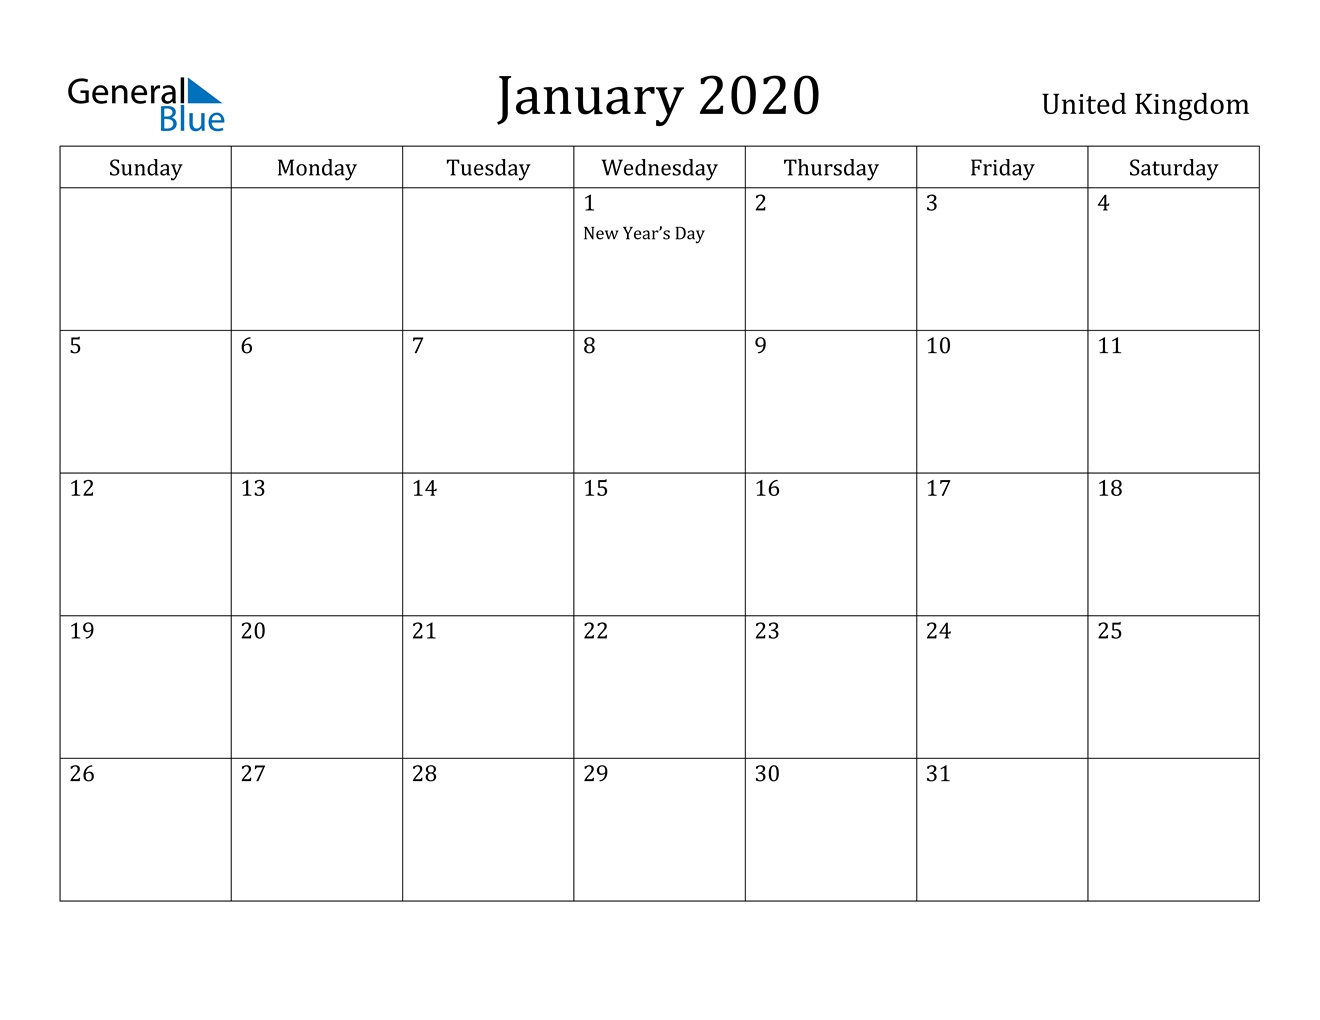 January 2020 Calendar - United Kingdom